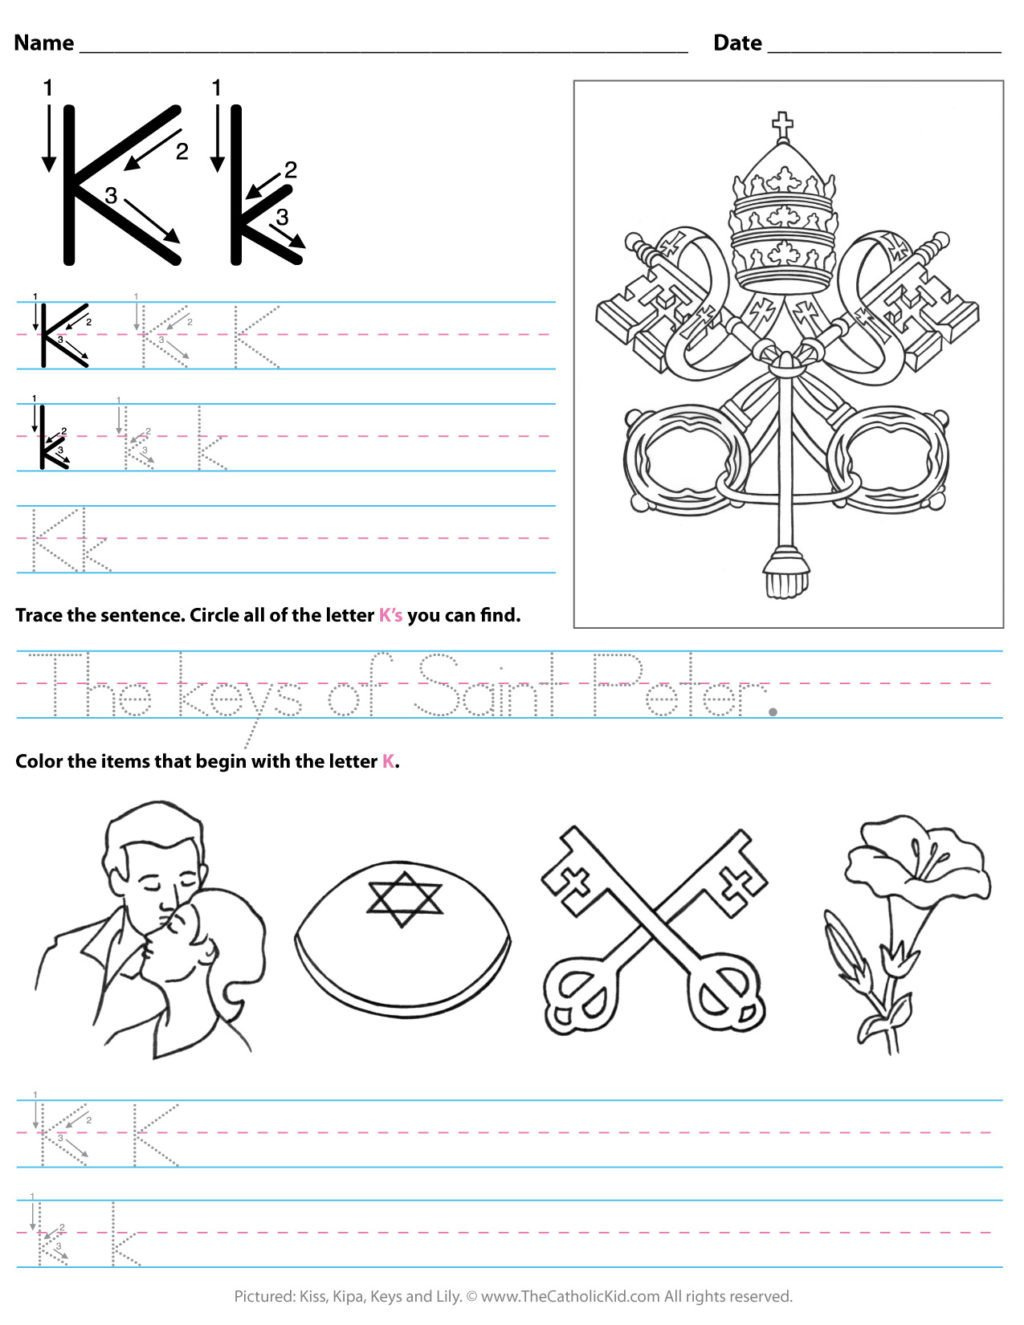 Letter K Tracing Worksheets Preschool Worksheet Freets for toddlers Printable K Preschool Letter